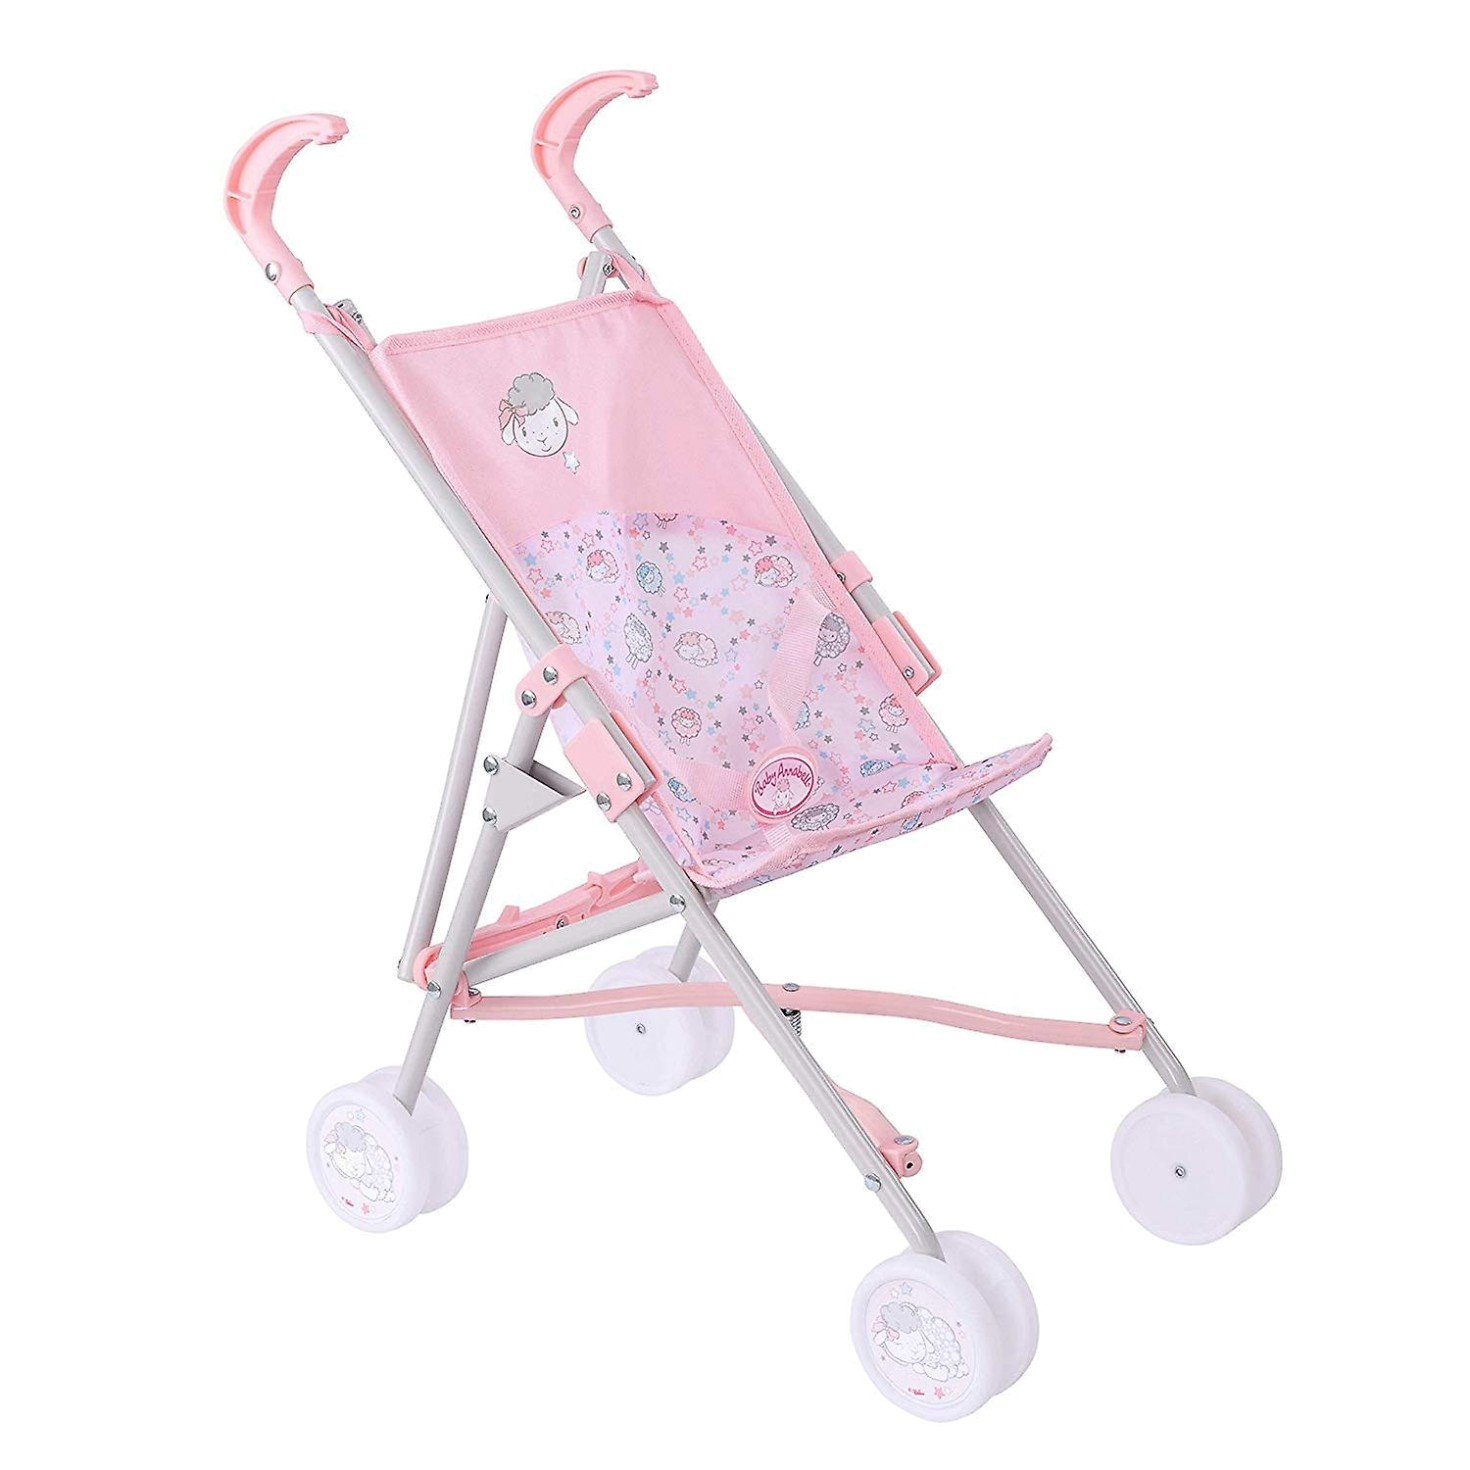 BABY ANABELLE STROLLER